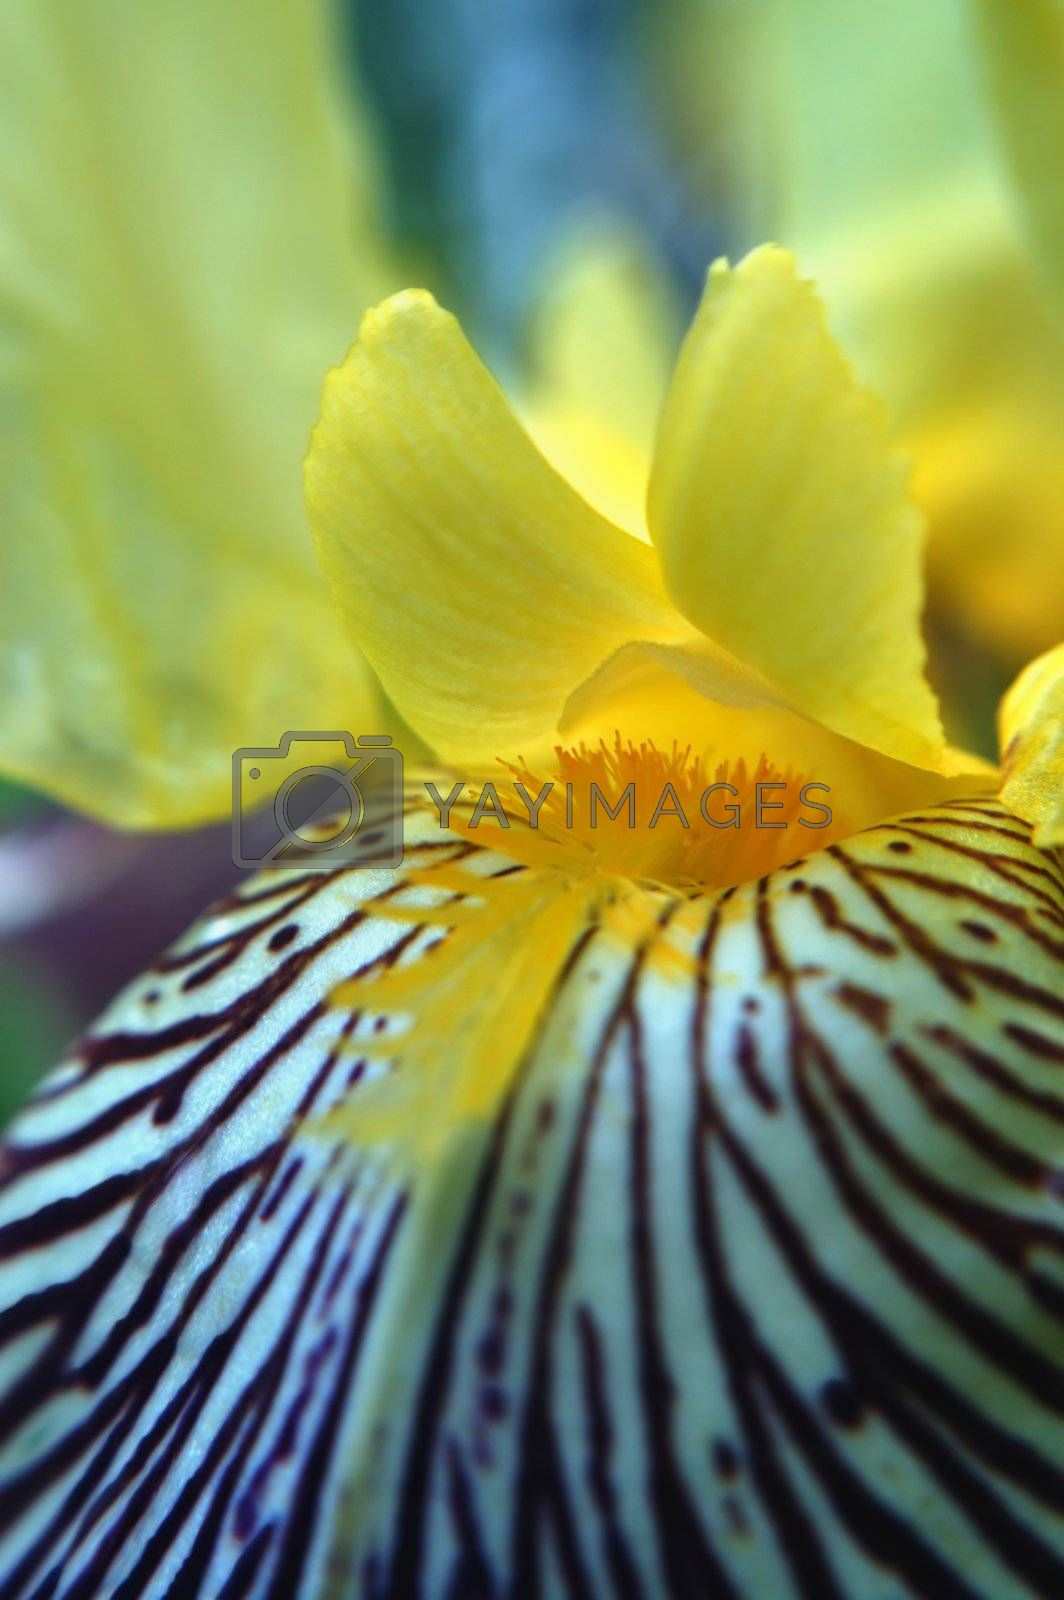 A beautiful purple & yellow Iris macro. To me, the center of the flower resembles a bird.